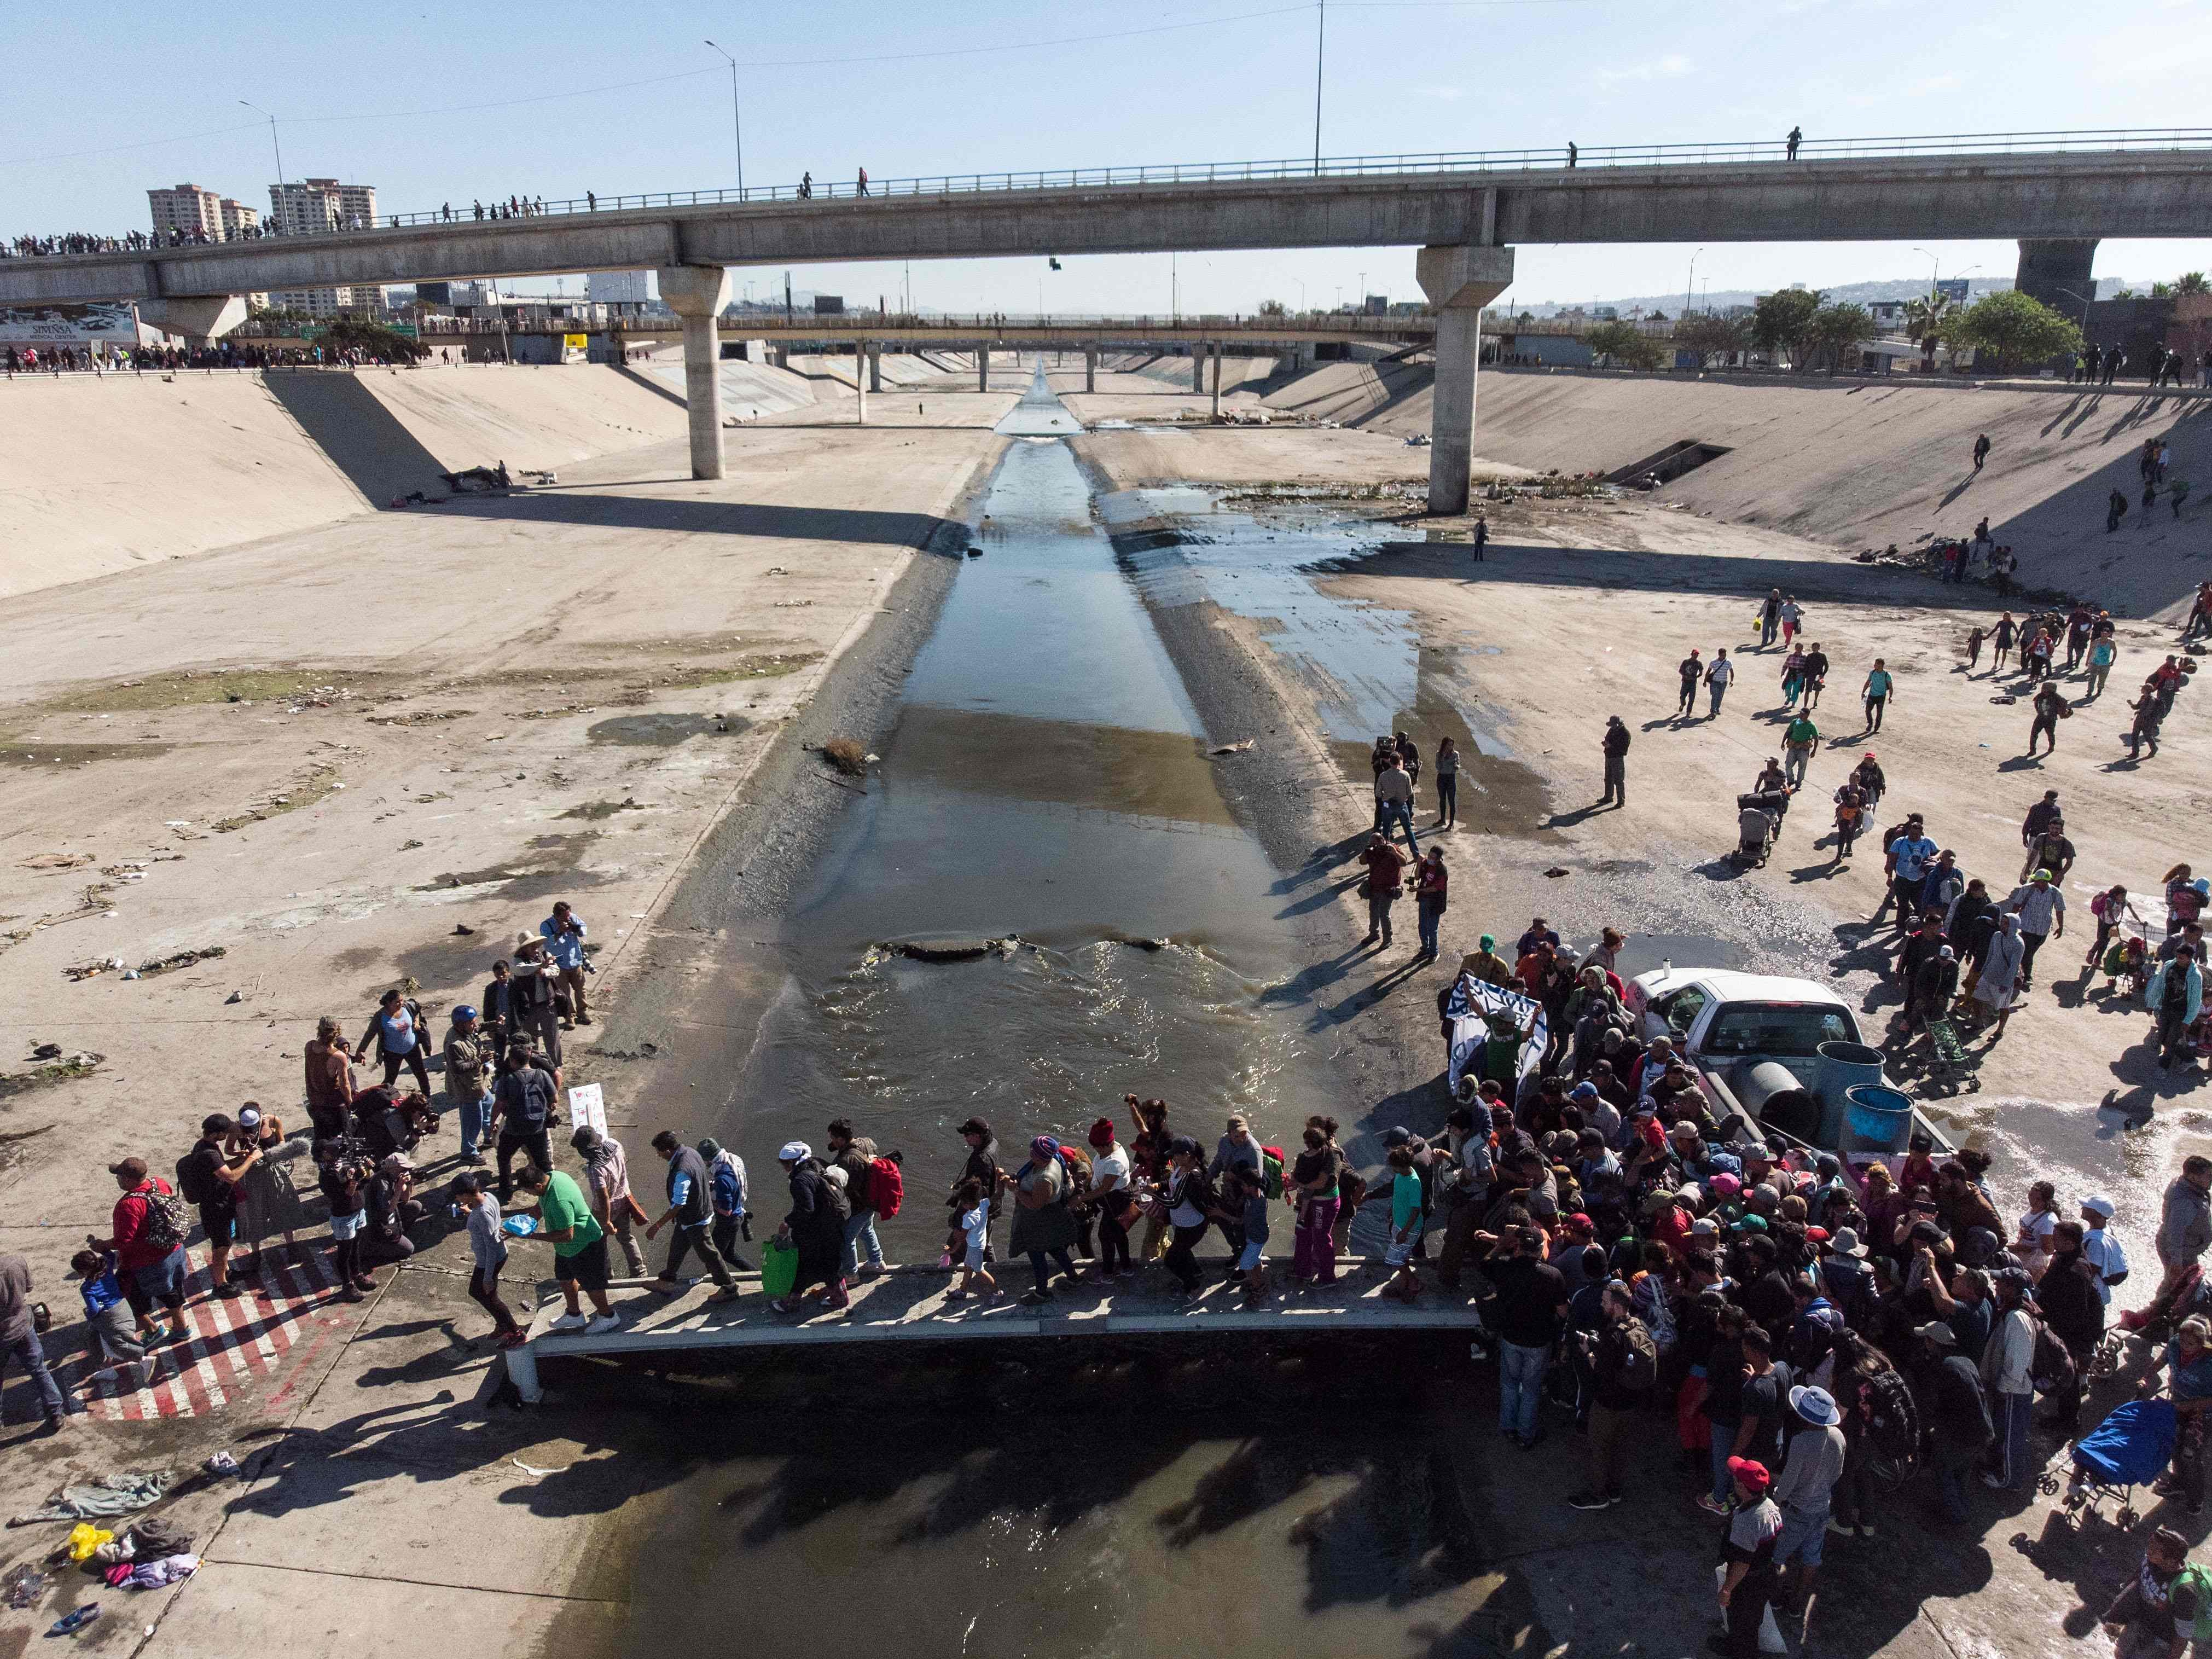 A group of Central American migrants cross the almost dry riverbed of the Tijuana River in an attempt to get to El Chaparral port of entry, in Tijuana, Mexico, near the U.S.-Mexico border on Nov. 25, 2018.